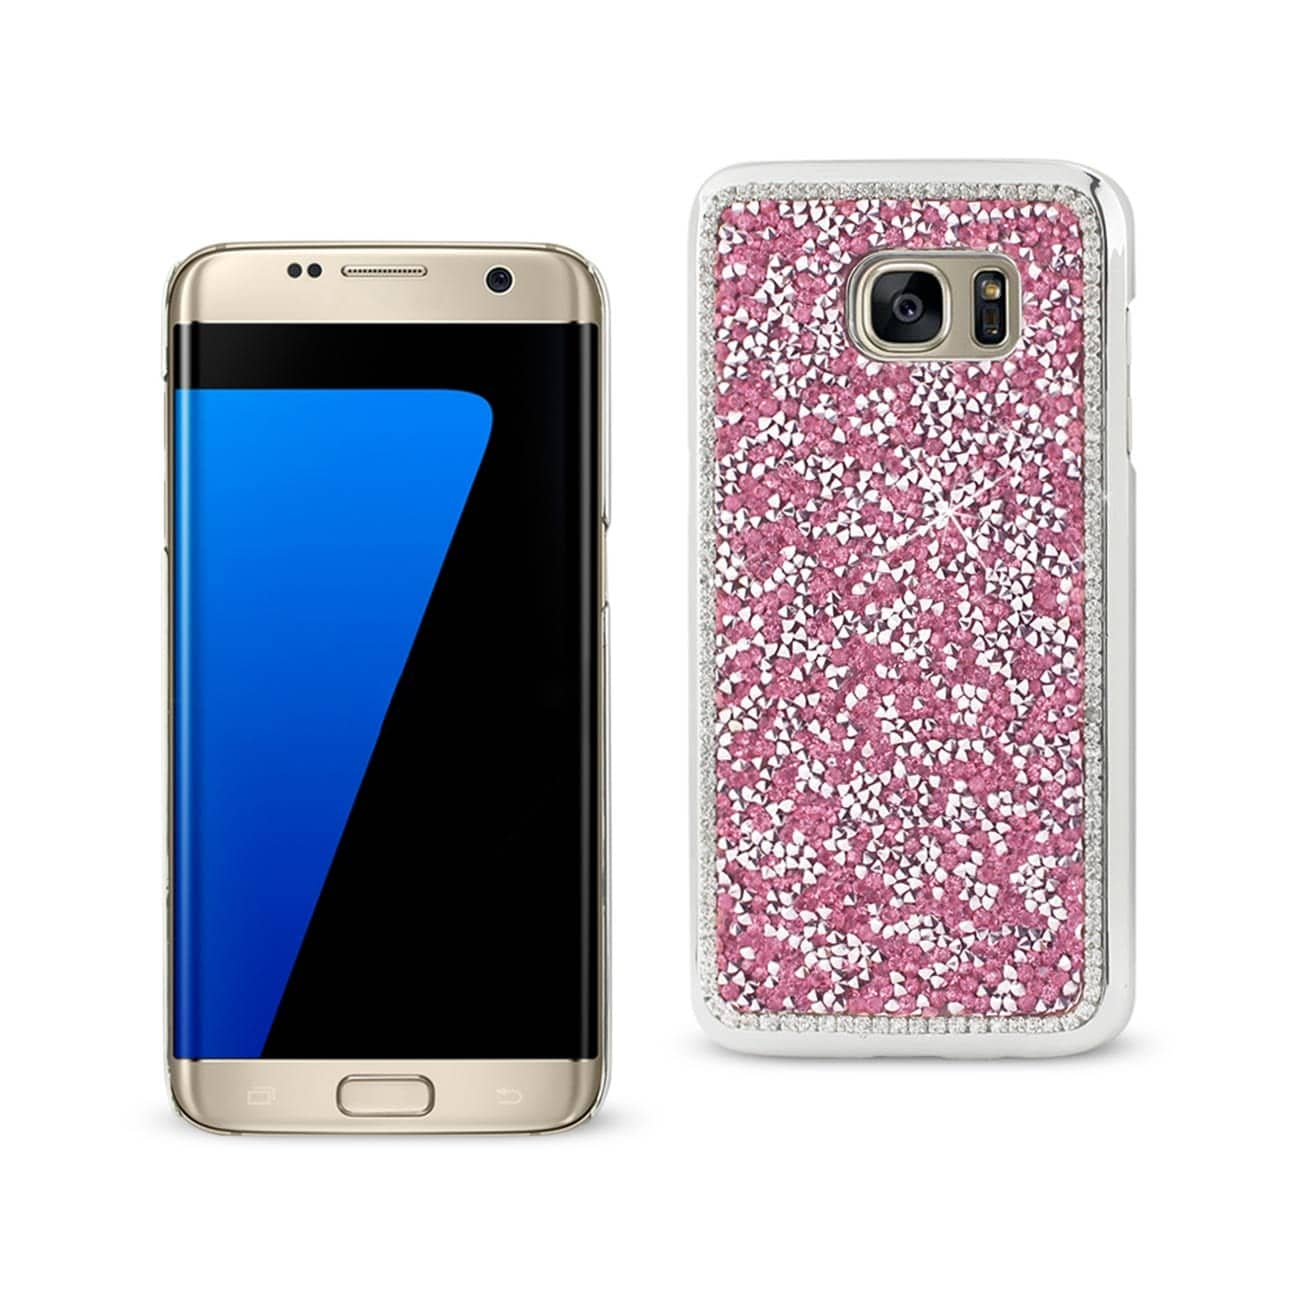 SAMSUNG GALAXY S7 EDGE JEWELRY BLING RHINESTONE CASE IN PINK